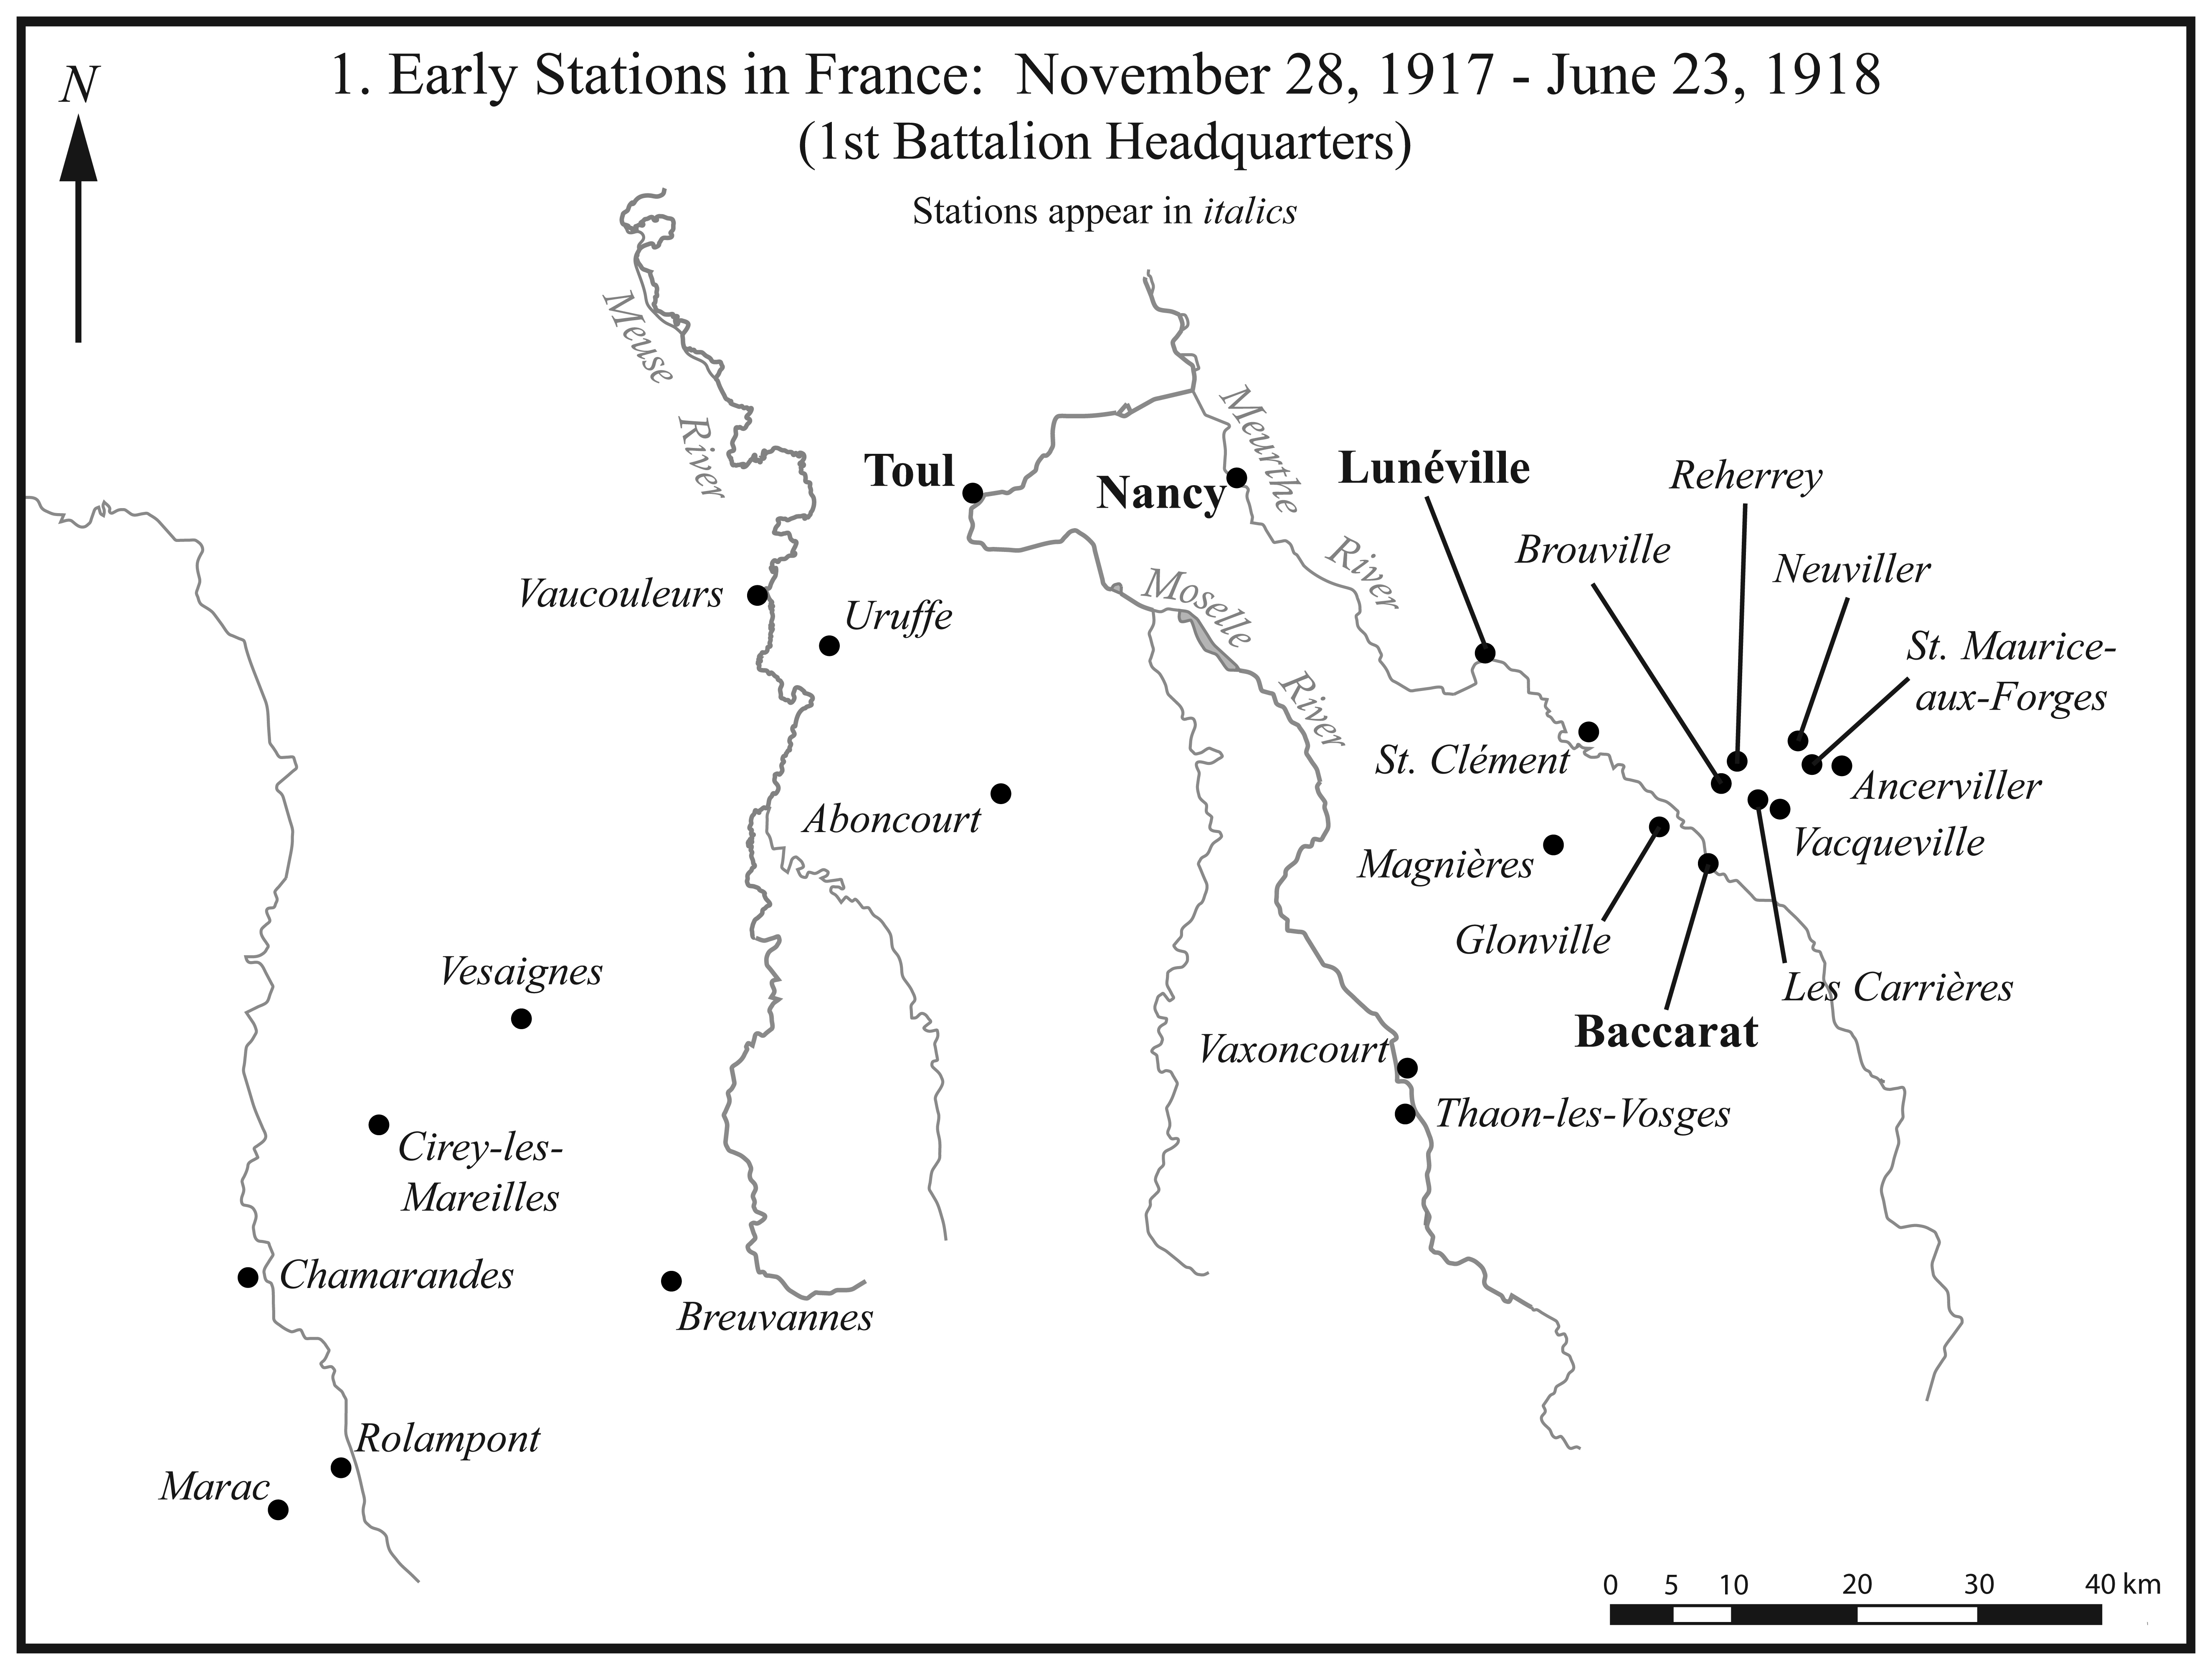 I.1. Early Stations in France.